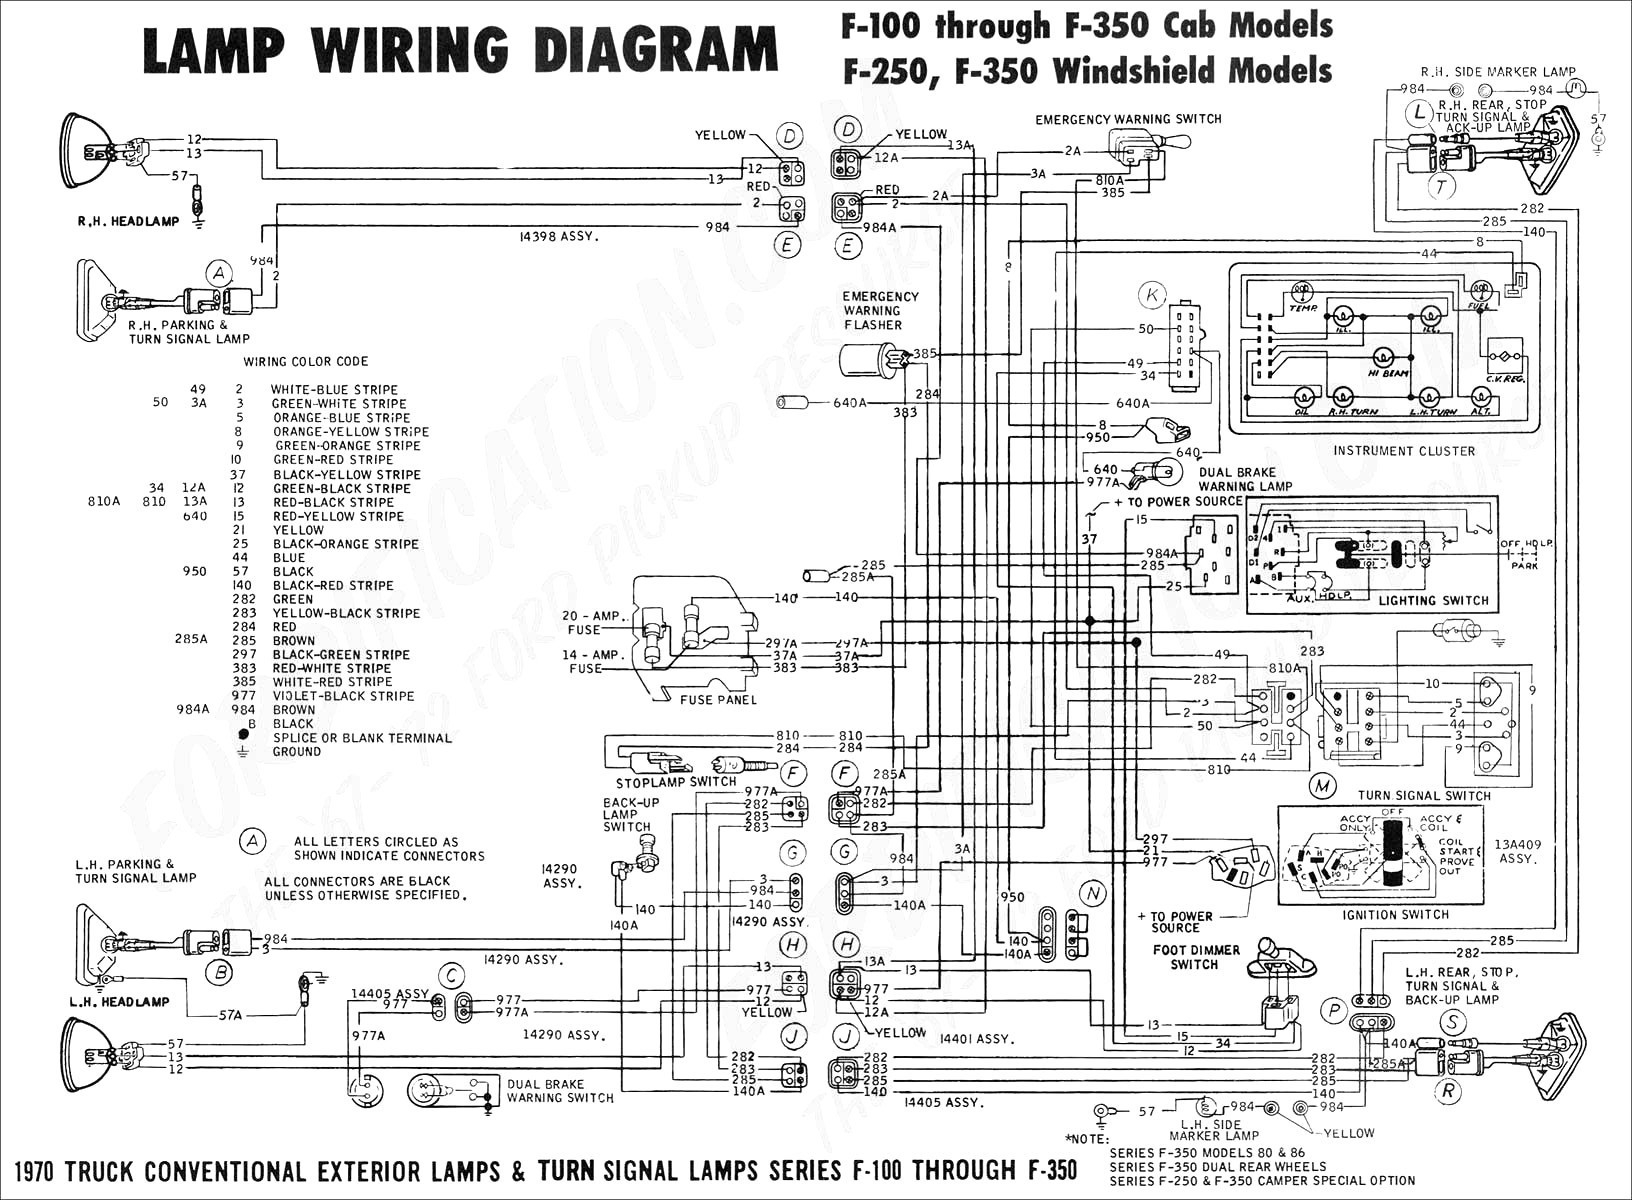 Two Wire Alternator Wiring Diagram 2006 Jeep Wrangler